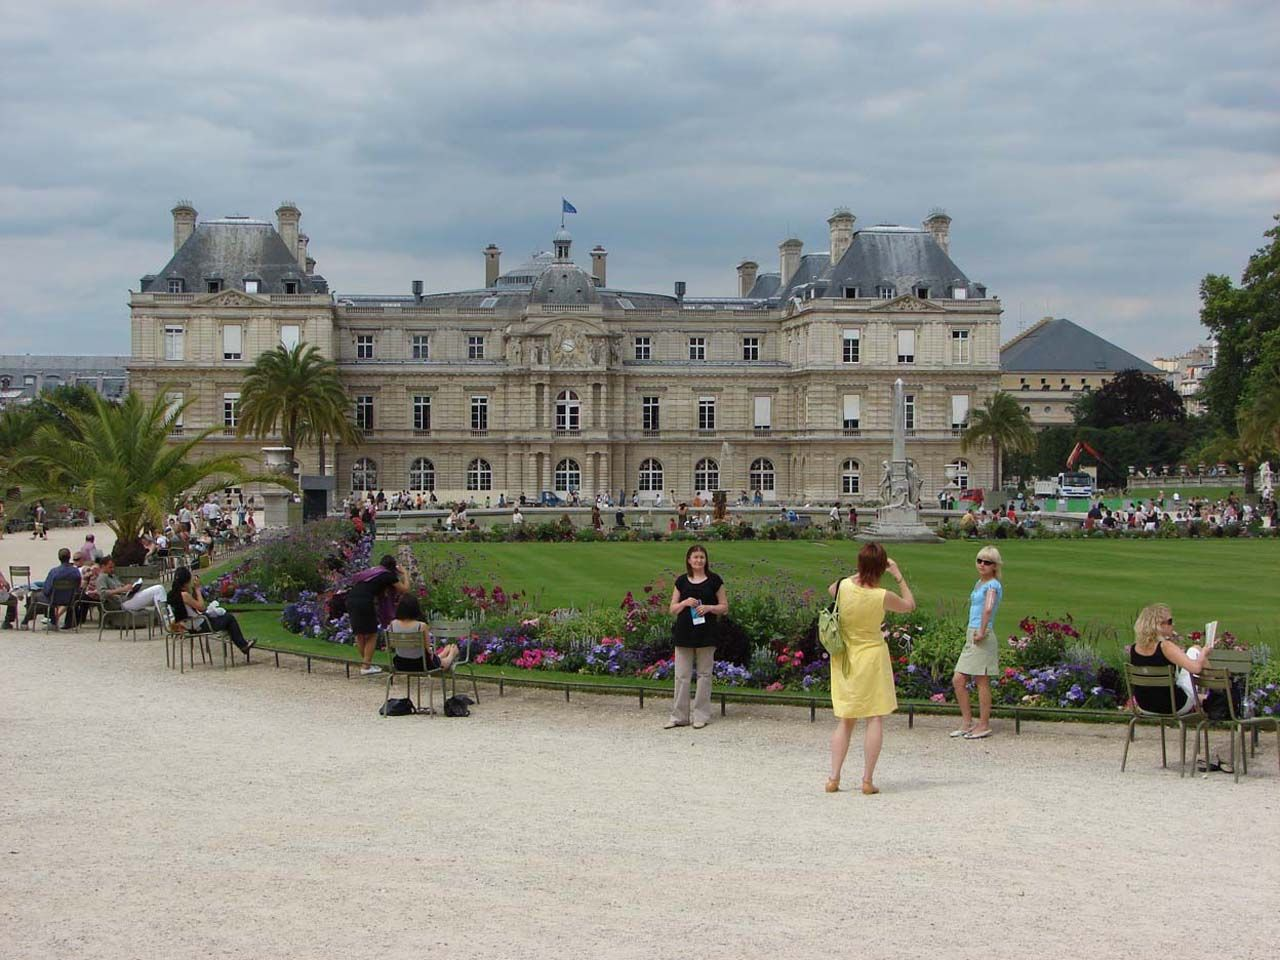 Buildings City The Luxembourg garden desktop wallpaper nr 1280x960